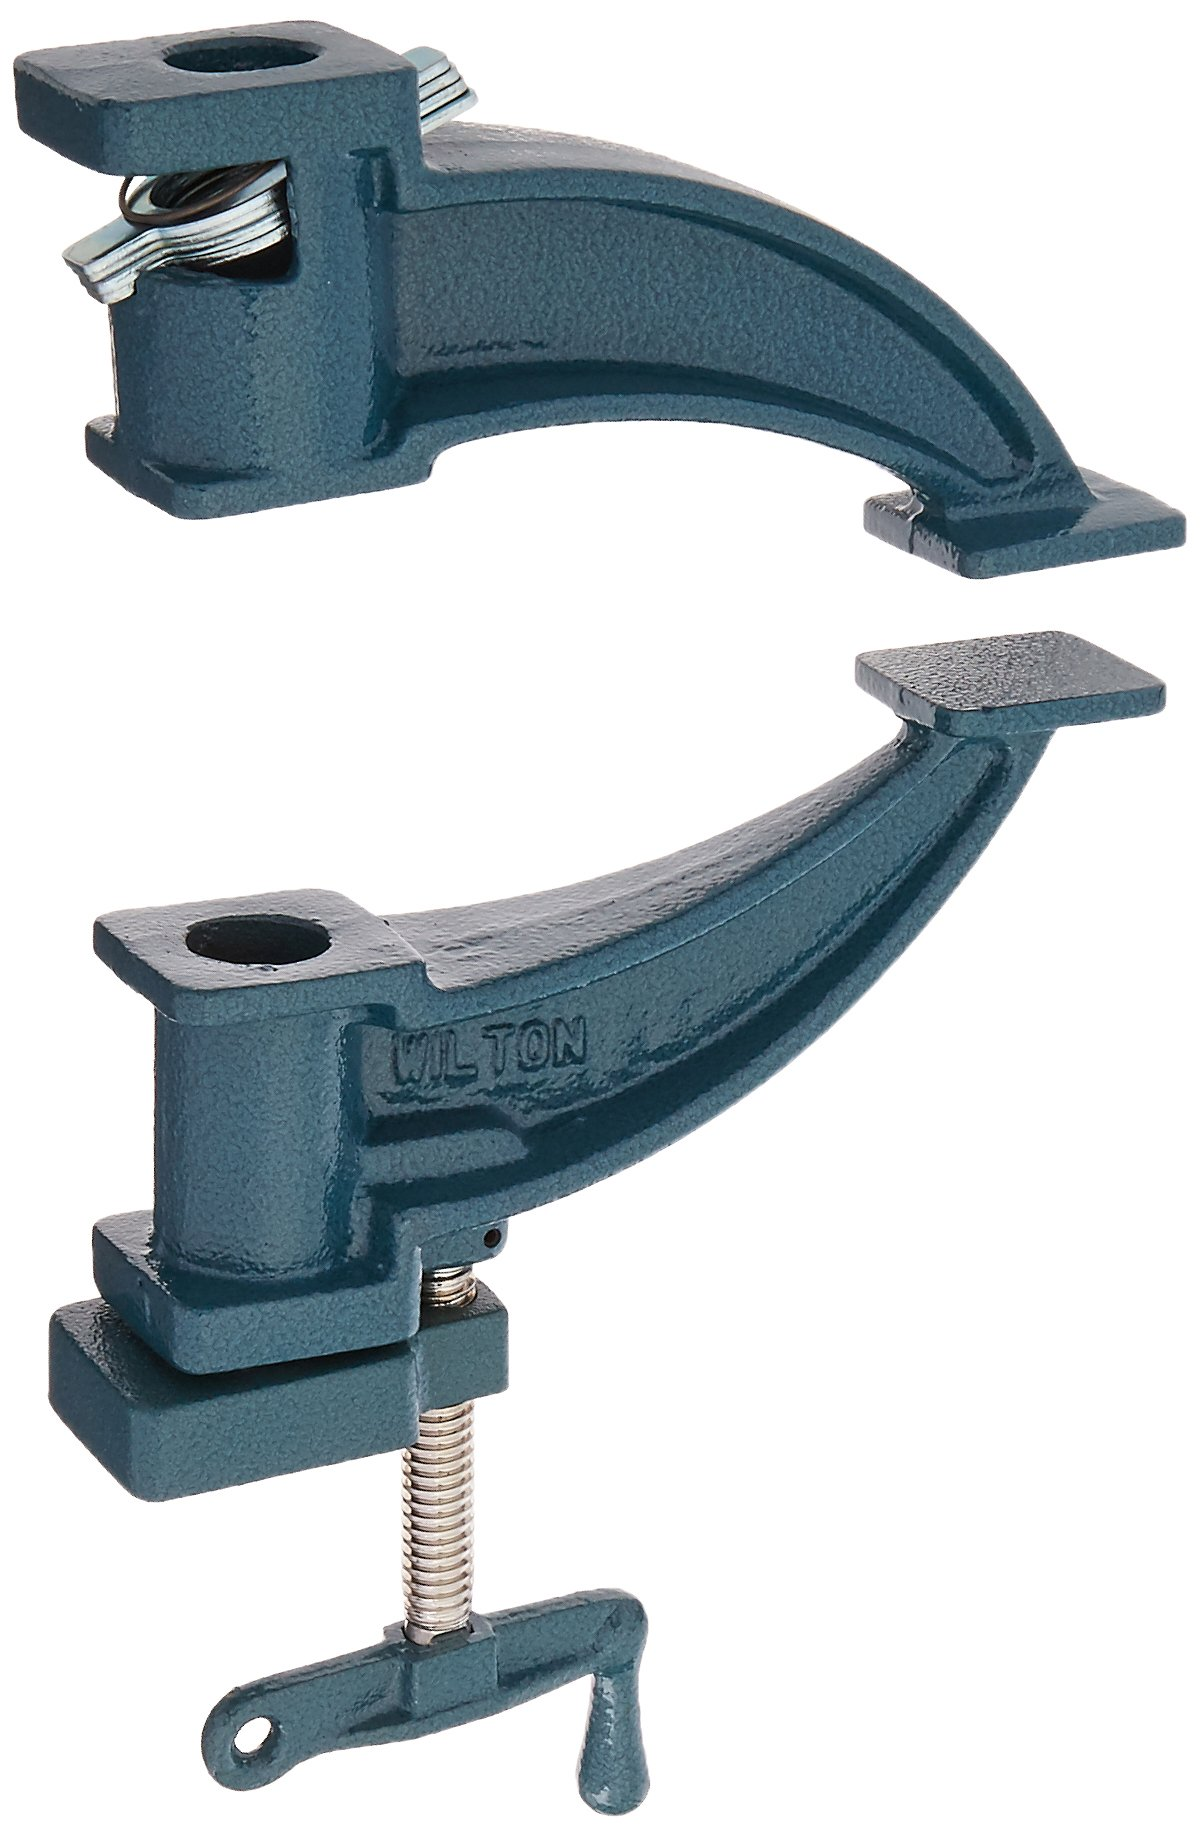 Wilton 14870 530, Steel Pipe Clamp Fixture, Deep-Throat, 3/4-Inch Threaded Pipe